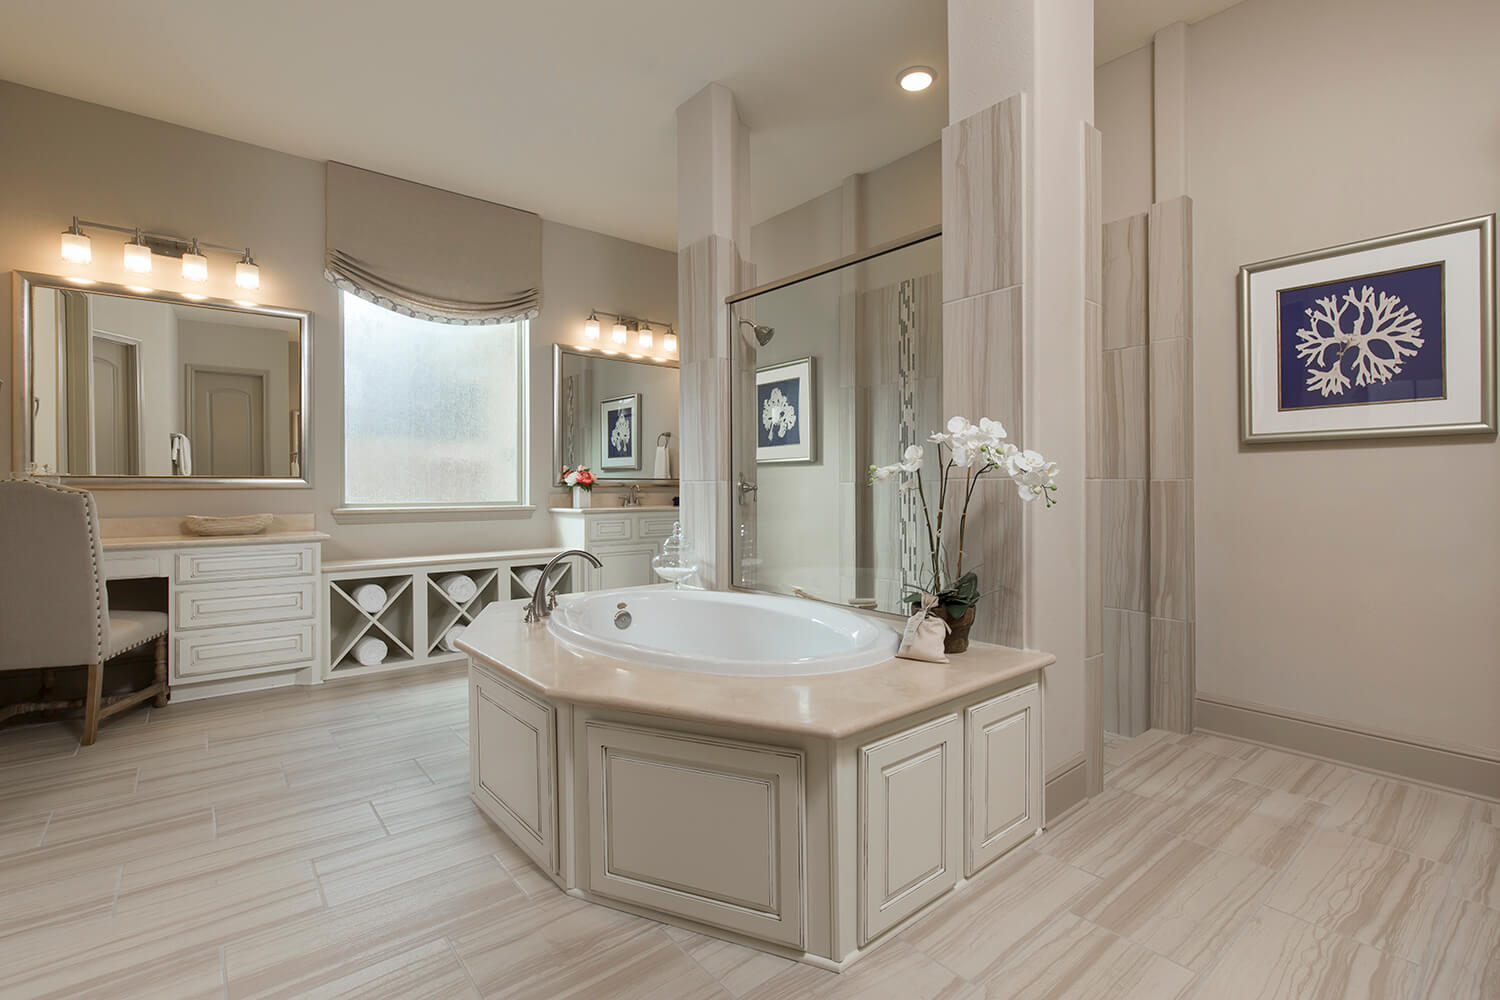 Bathroom 1 - The Jacksonville II (8310 Plan)